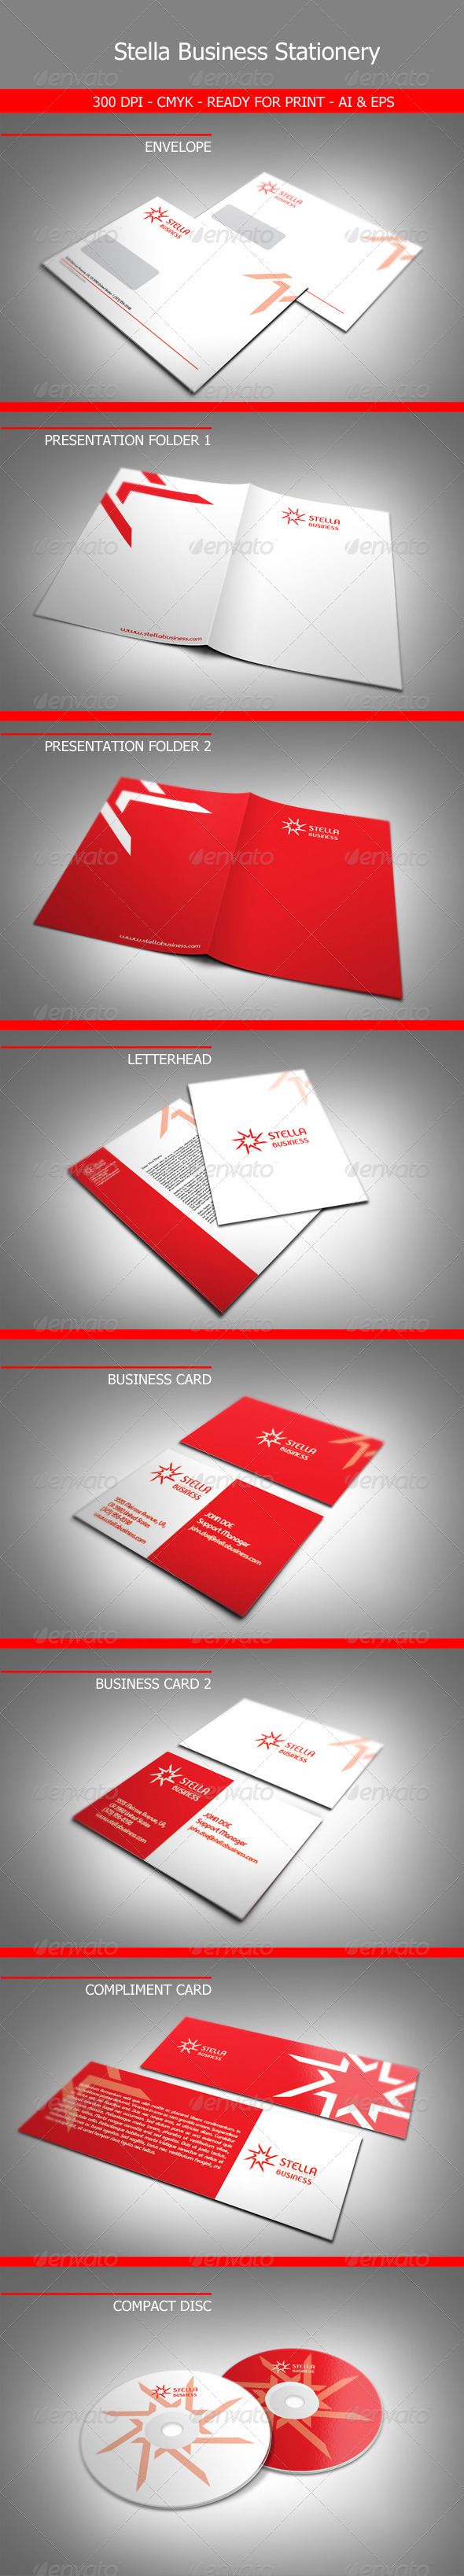 Stella Business Stationery - Stationery Print Templates